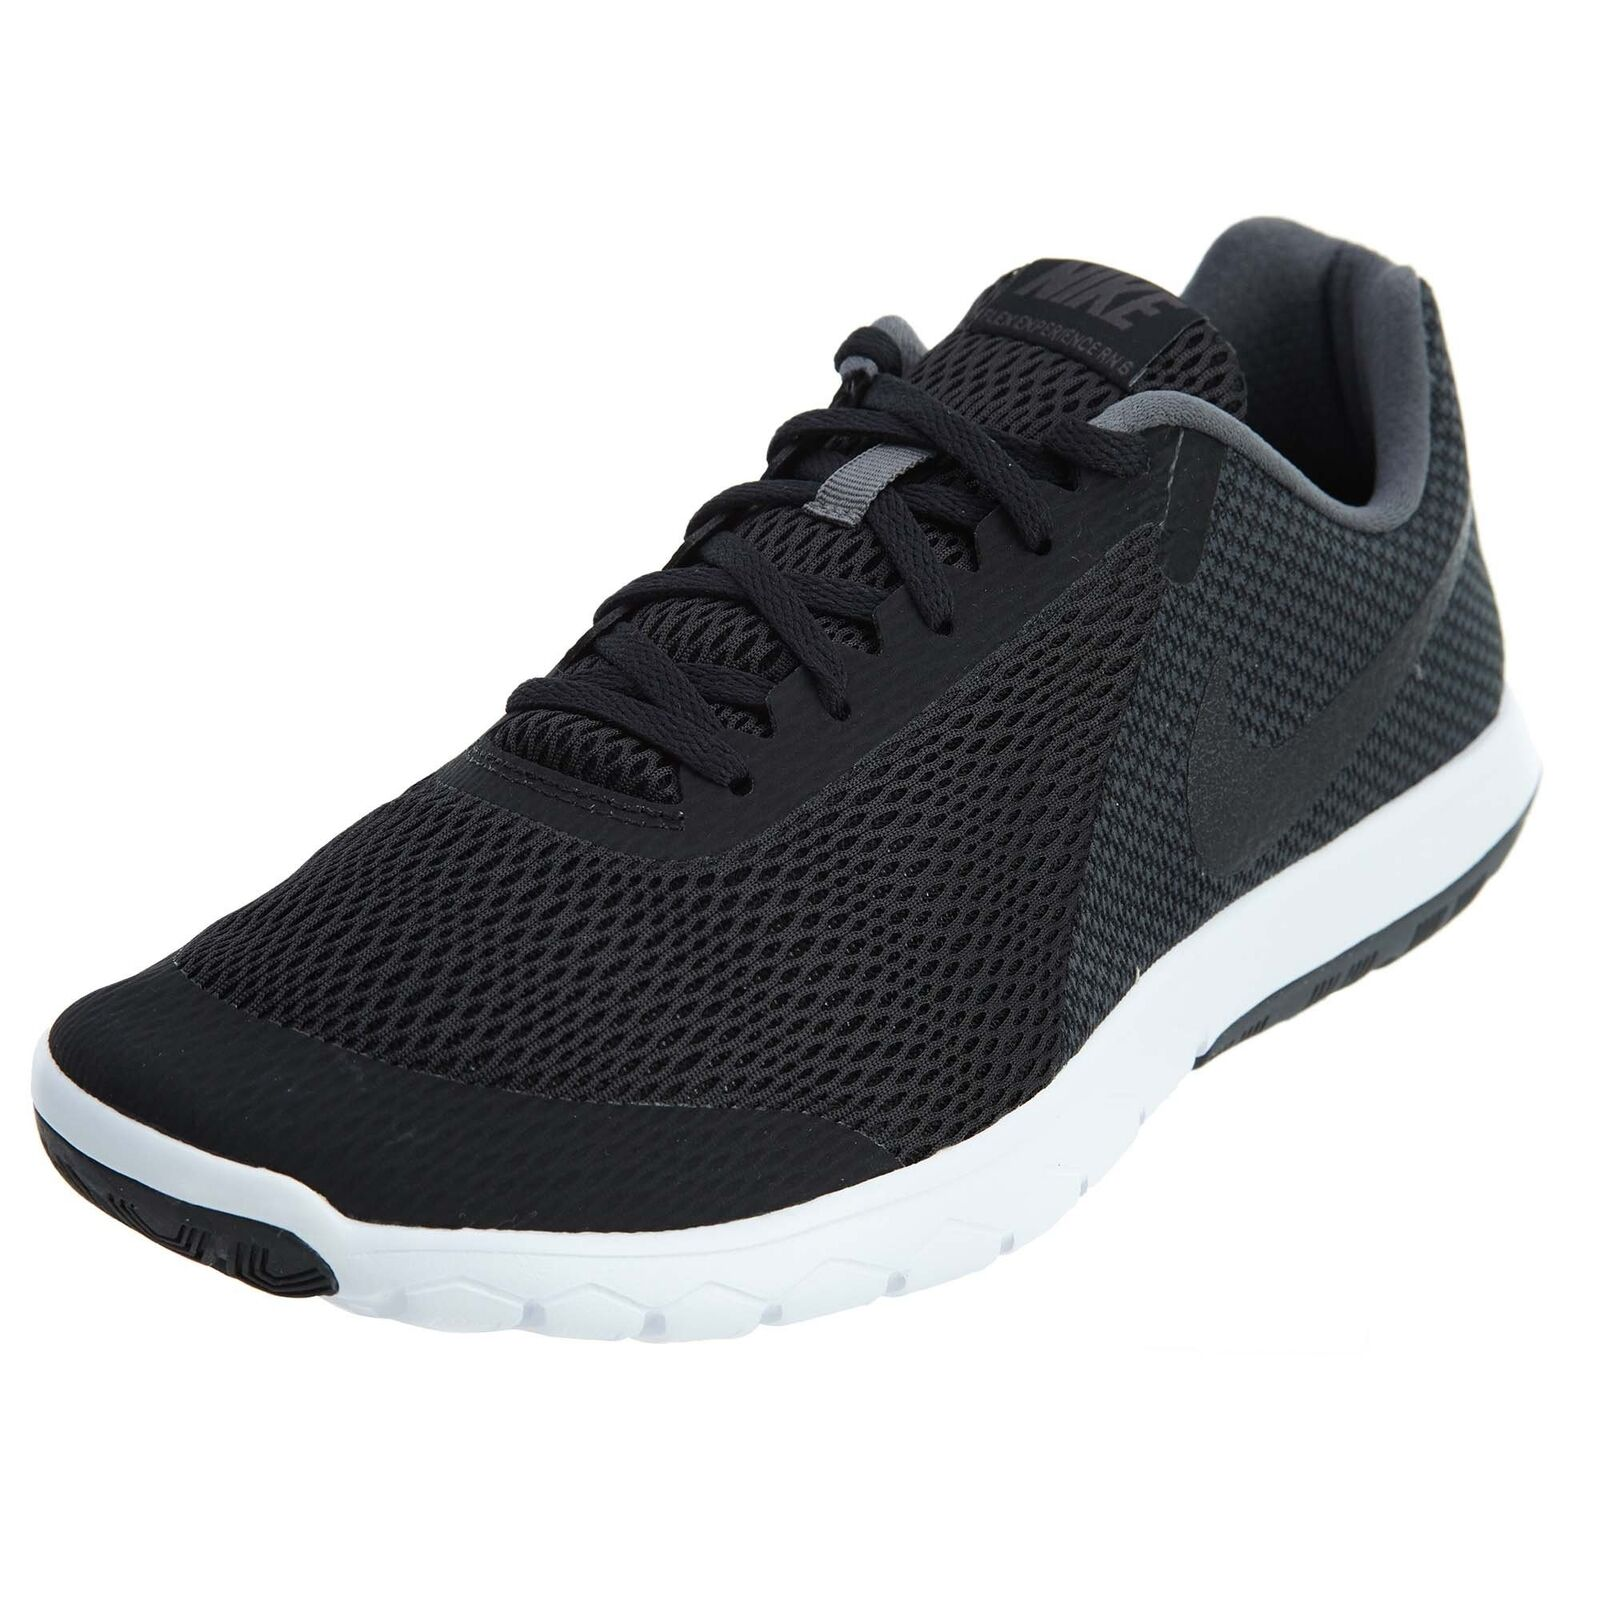 NIKE Men's Flex Experience Run 6 Running shoes Wide 4E Black Dark Grey White S...